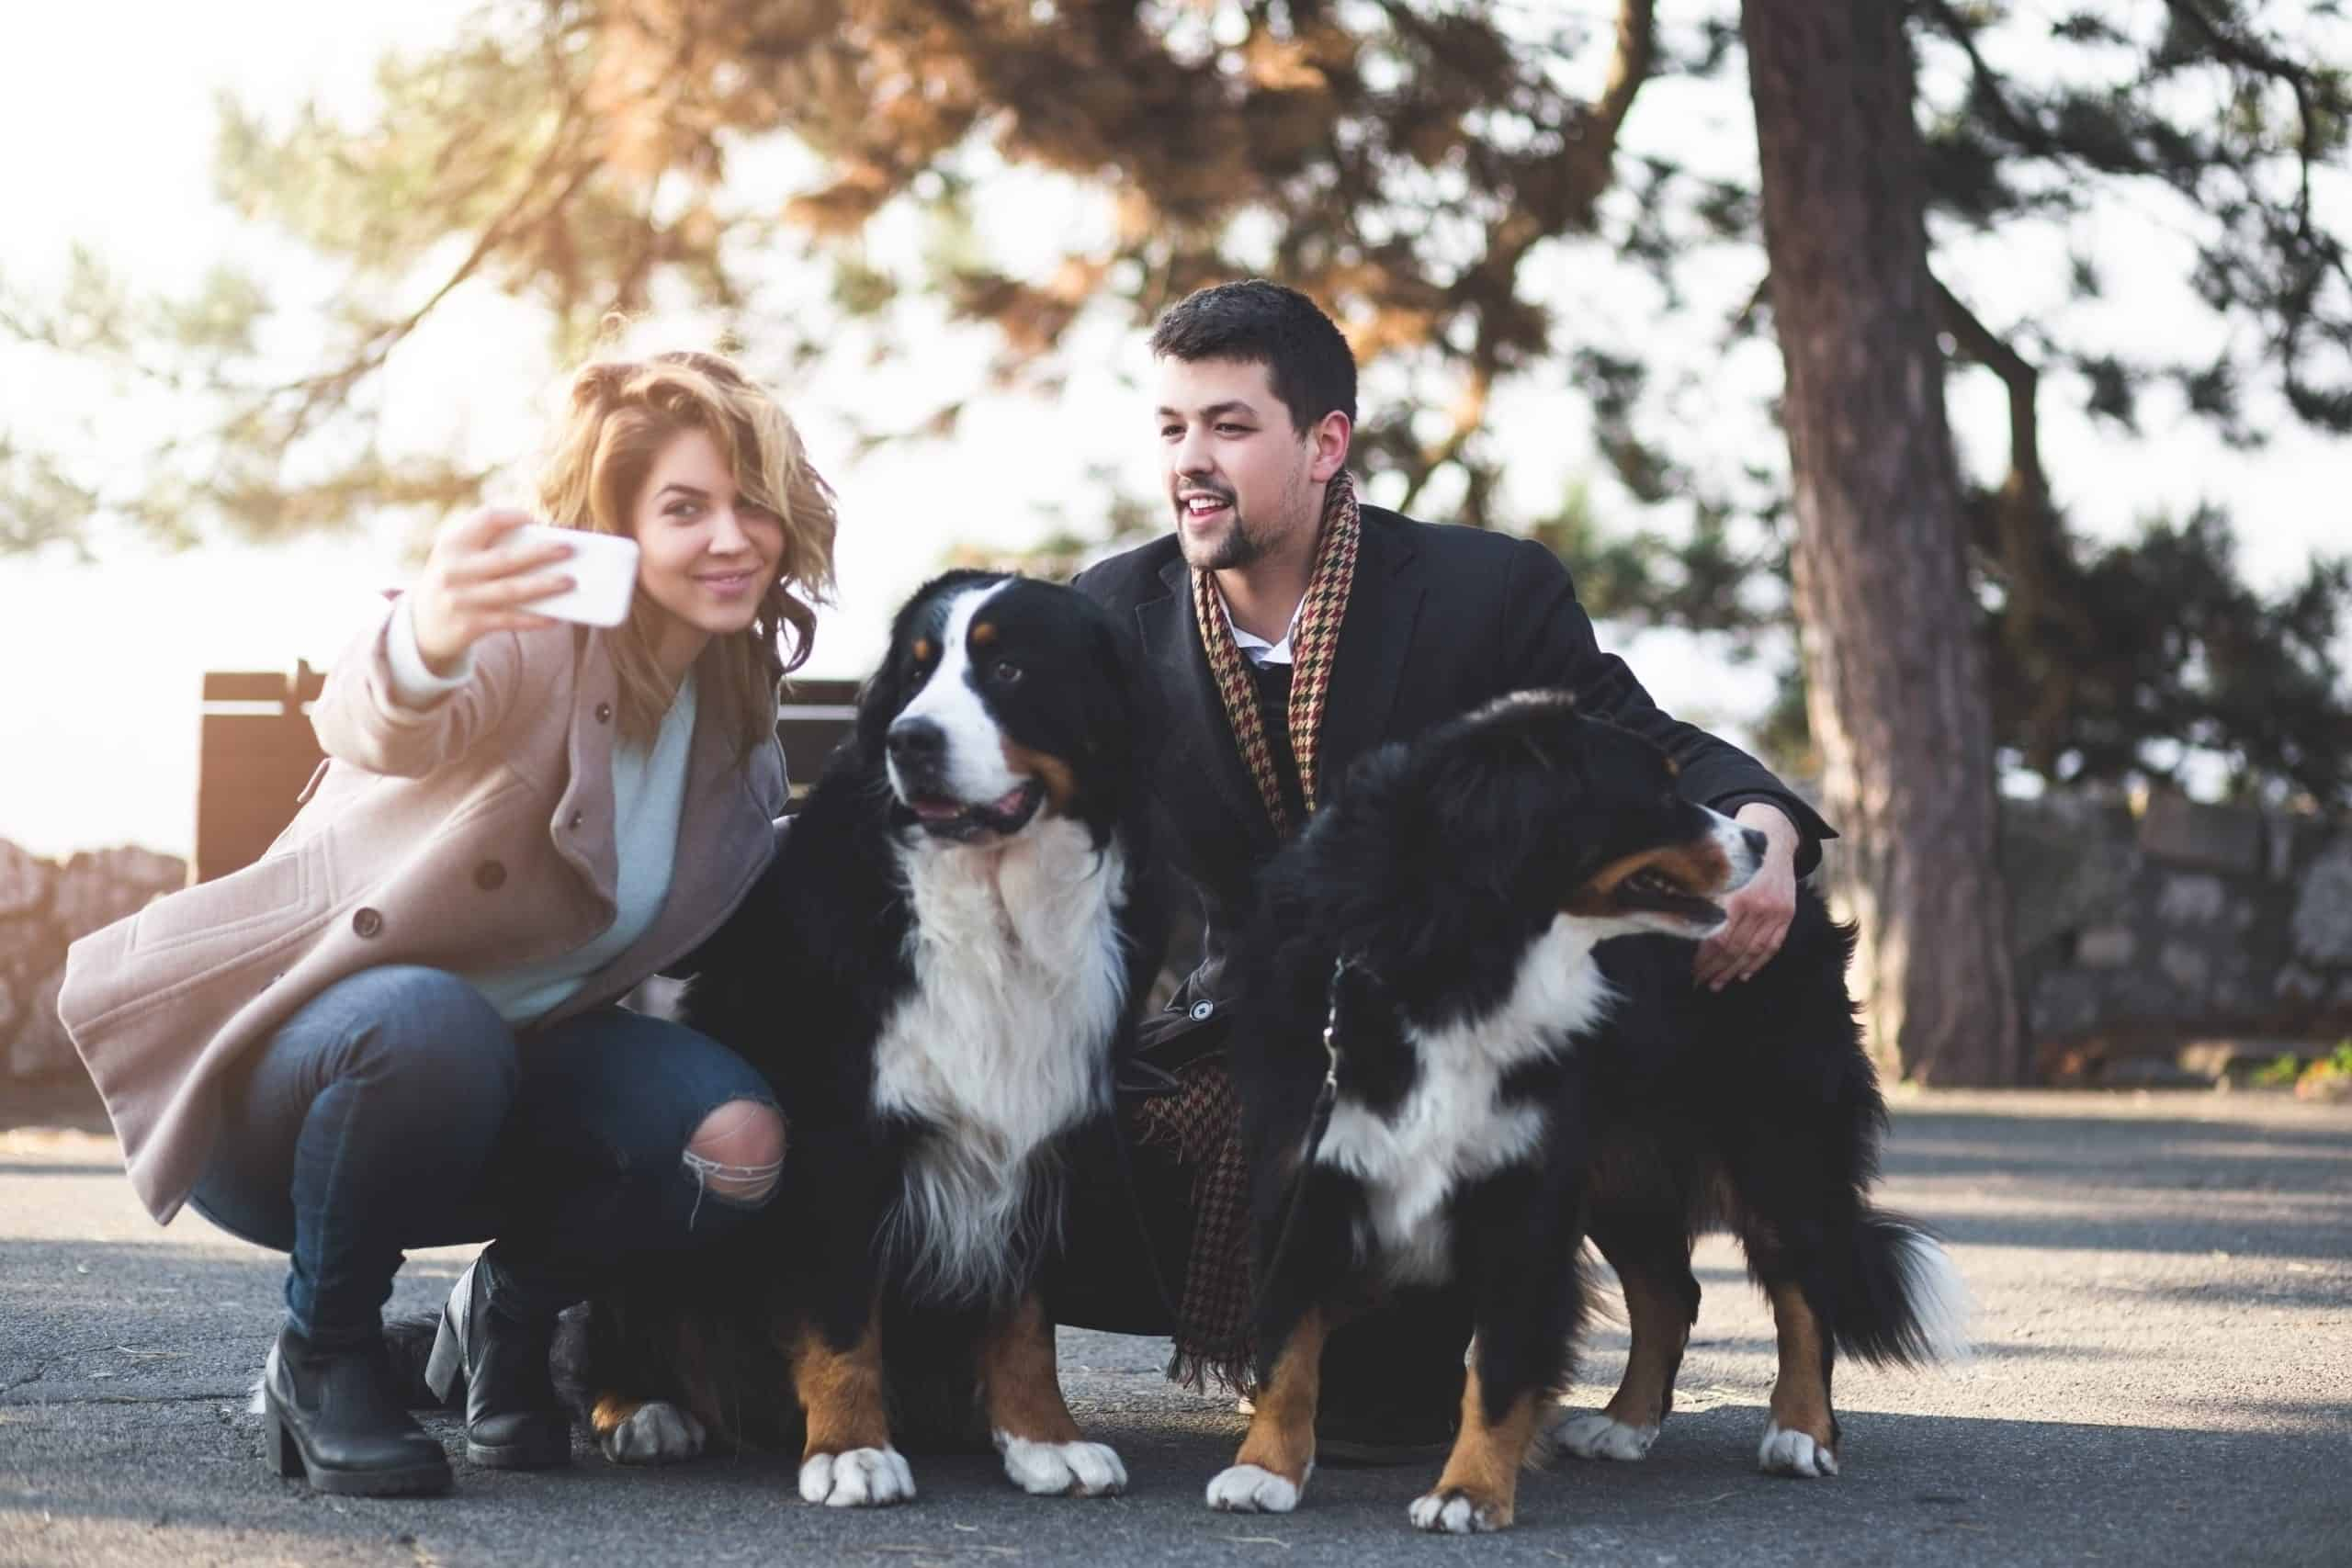 Couple poses for selfie with pair of Bernese Mountain Dogs. Like their dogs, Bernese Mountain Dog owners are friendly and enjoy meeting new people and dogs.